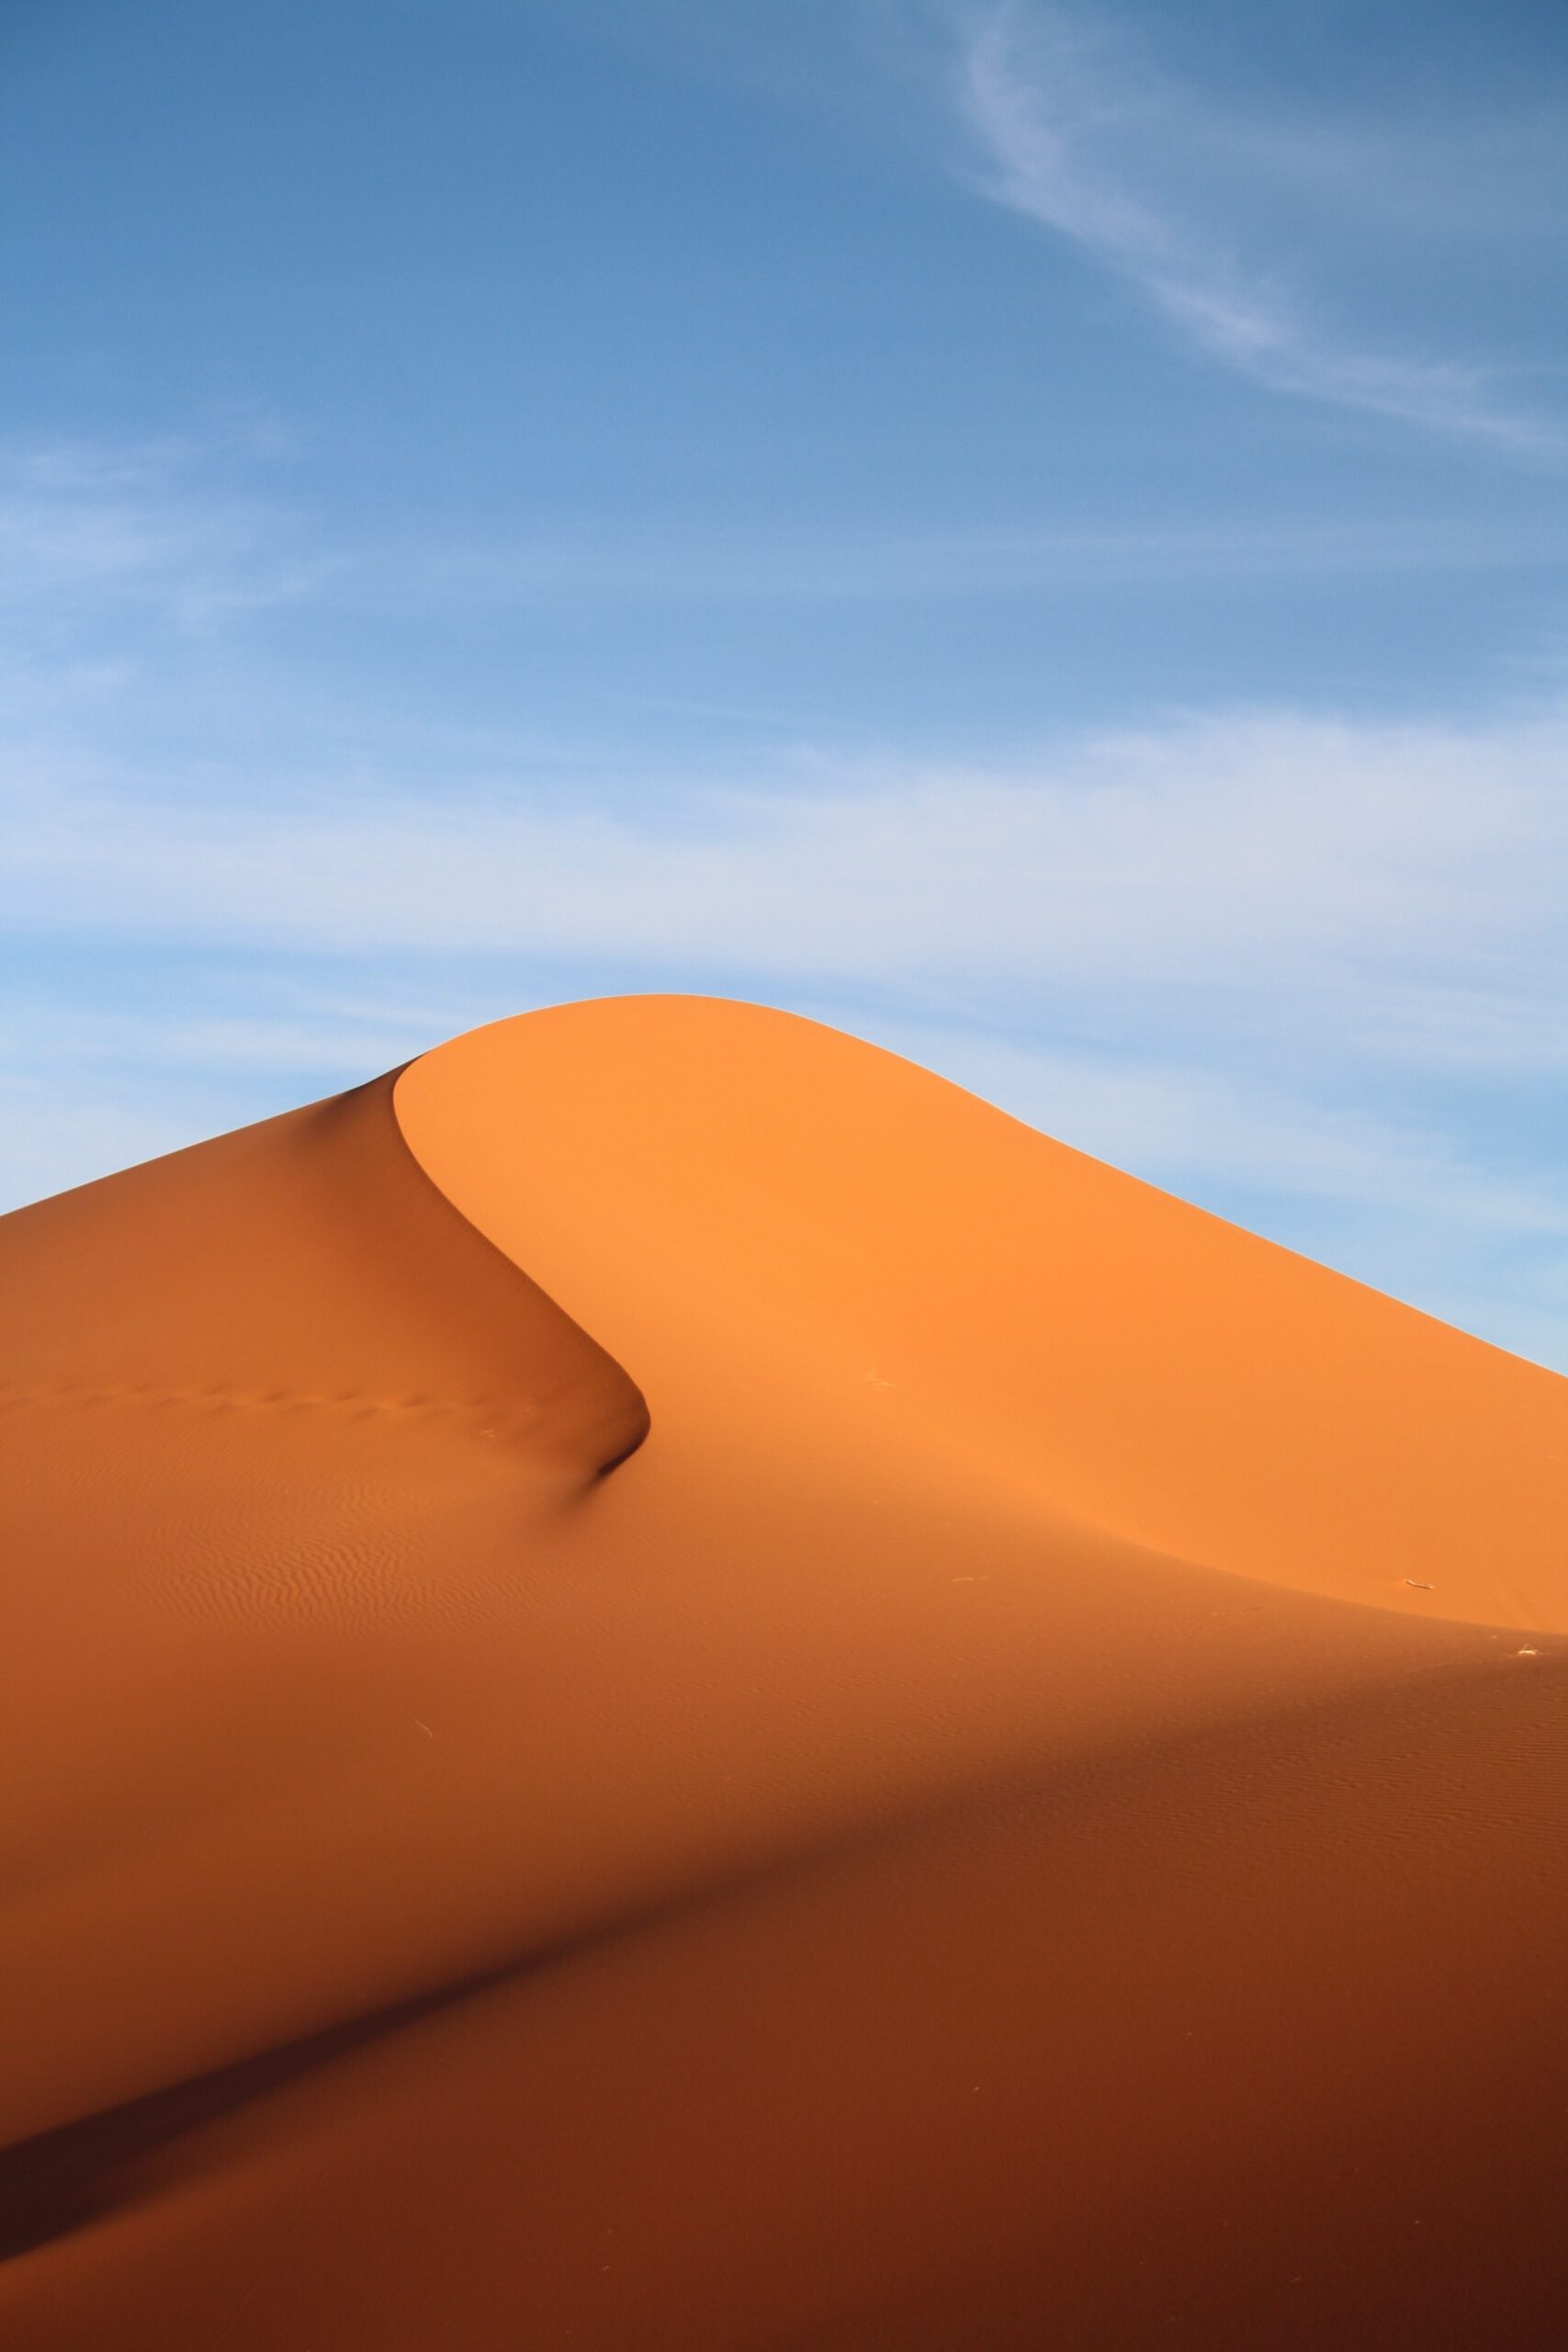 A tall, tan sand dune with a sinuous front curve reaches high into a blue sky.